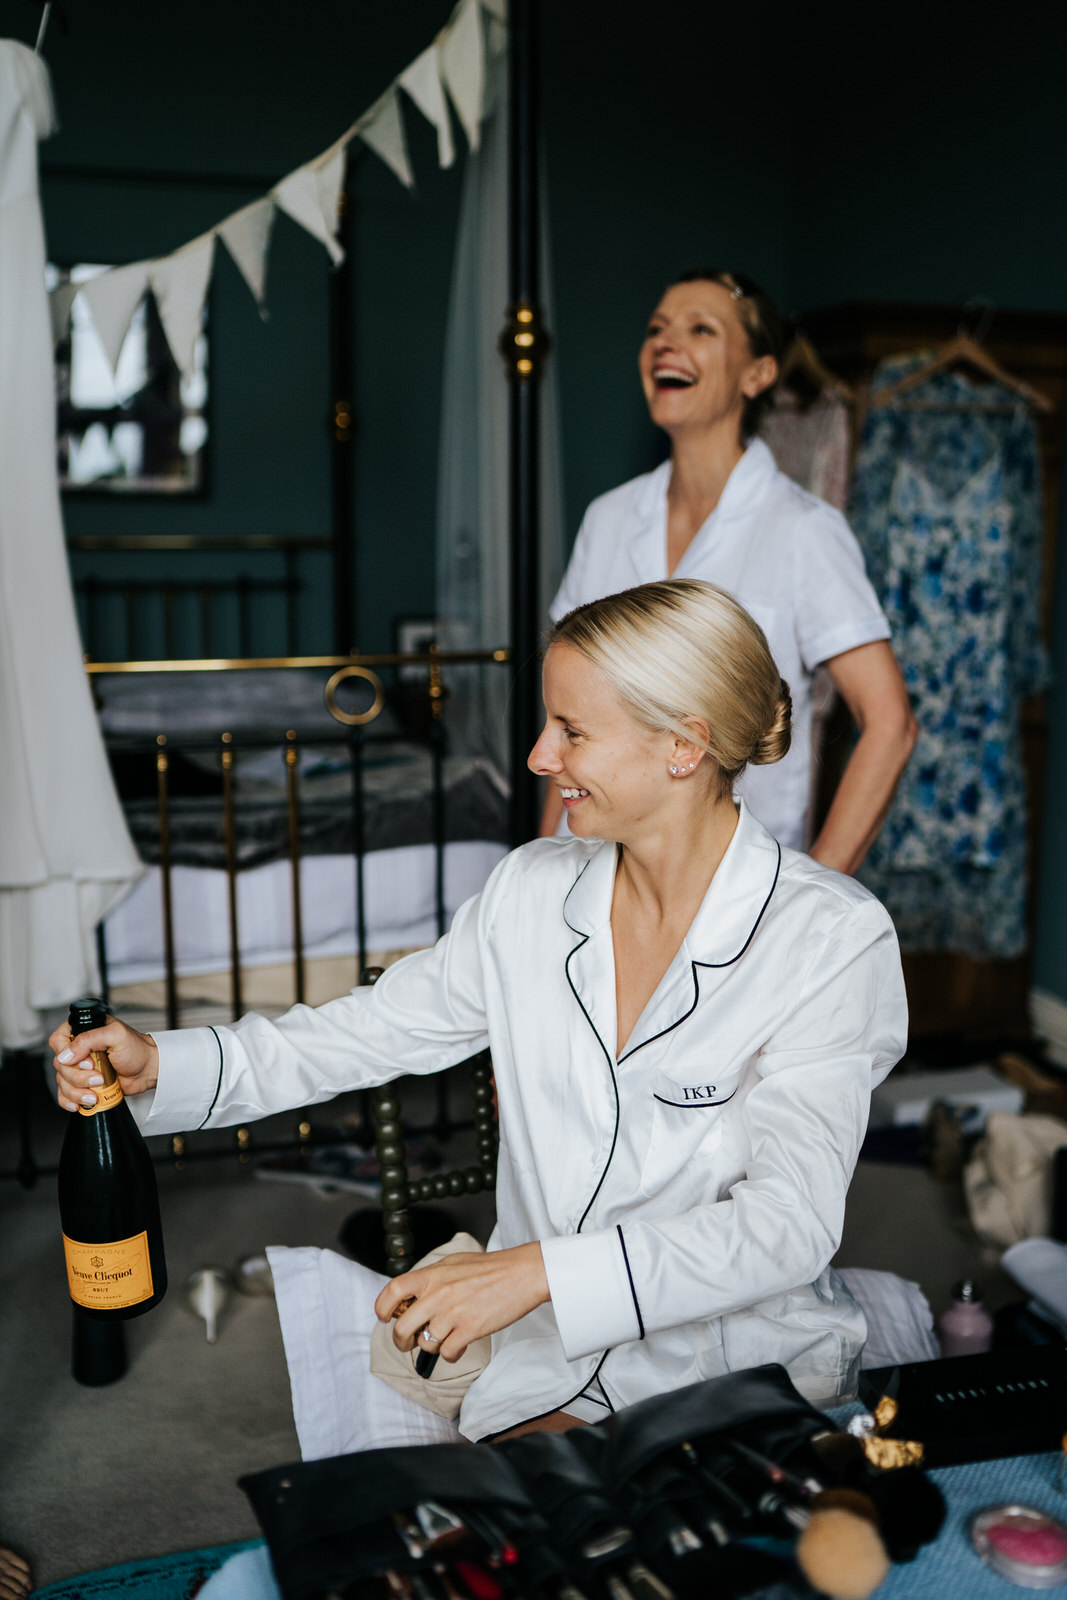 Bride holds and opens a bottle of champagne while mother of the bride smiles in the background